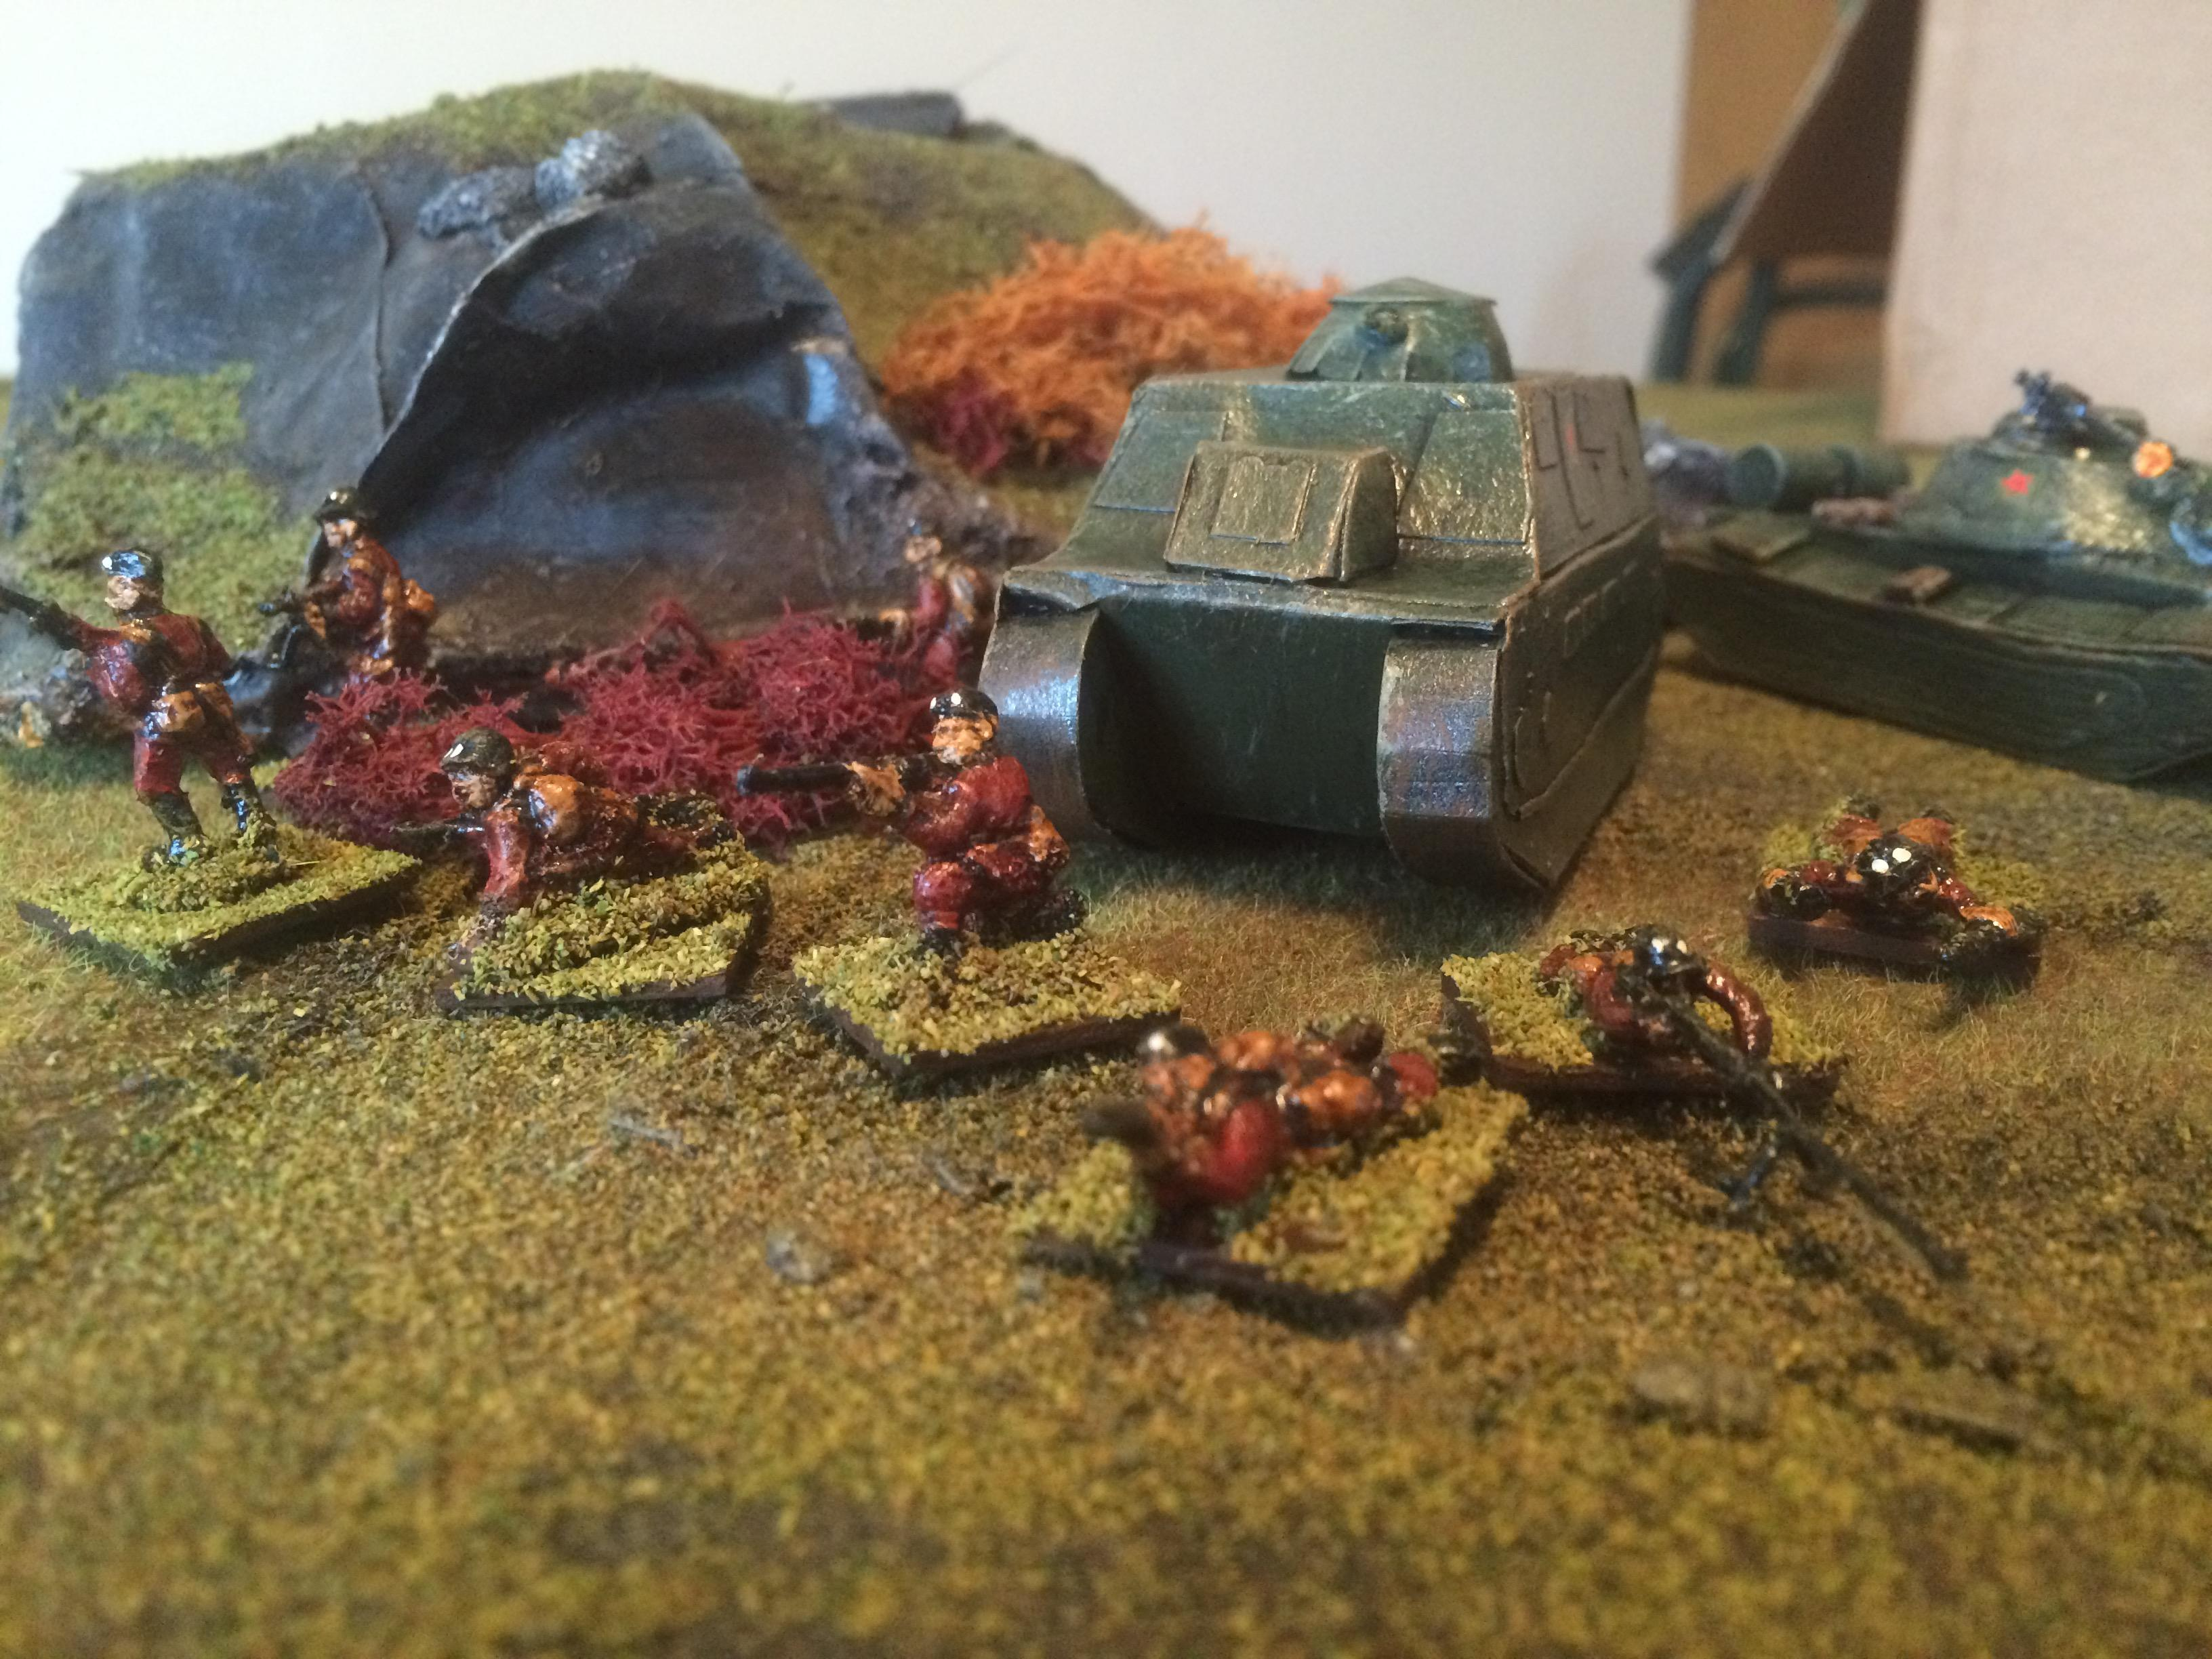 APC and infantry